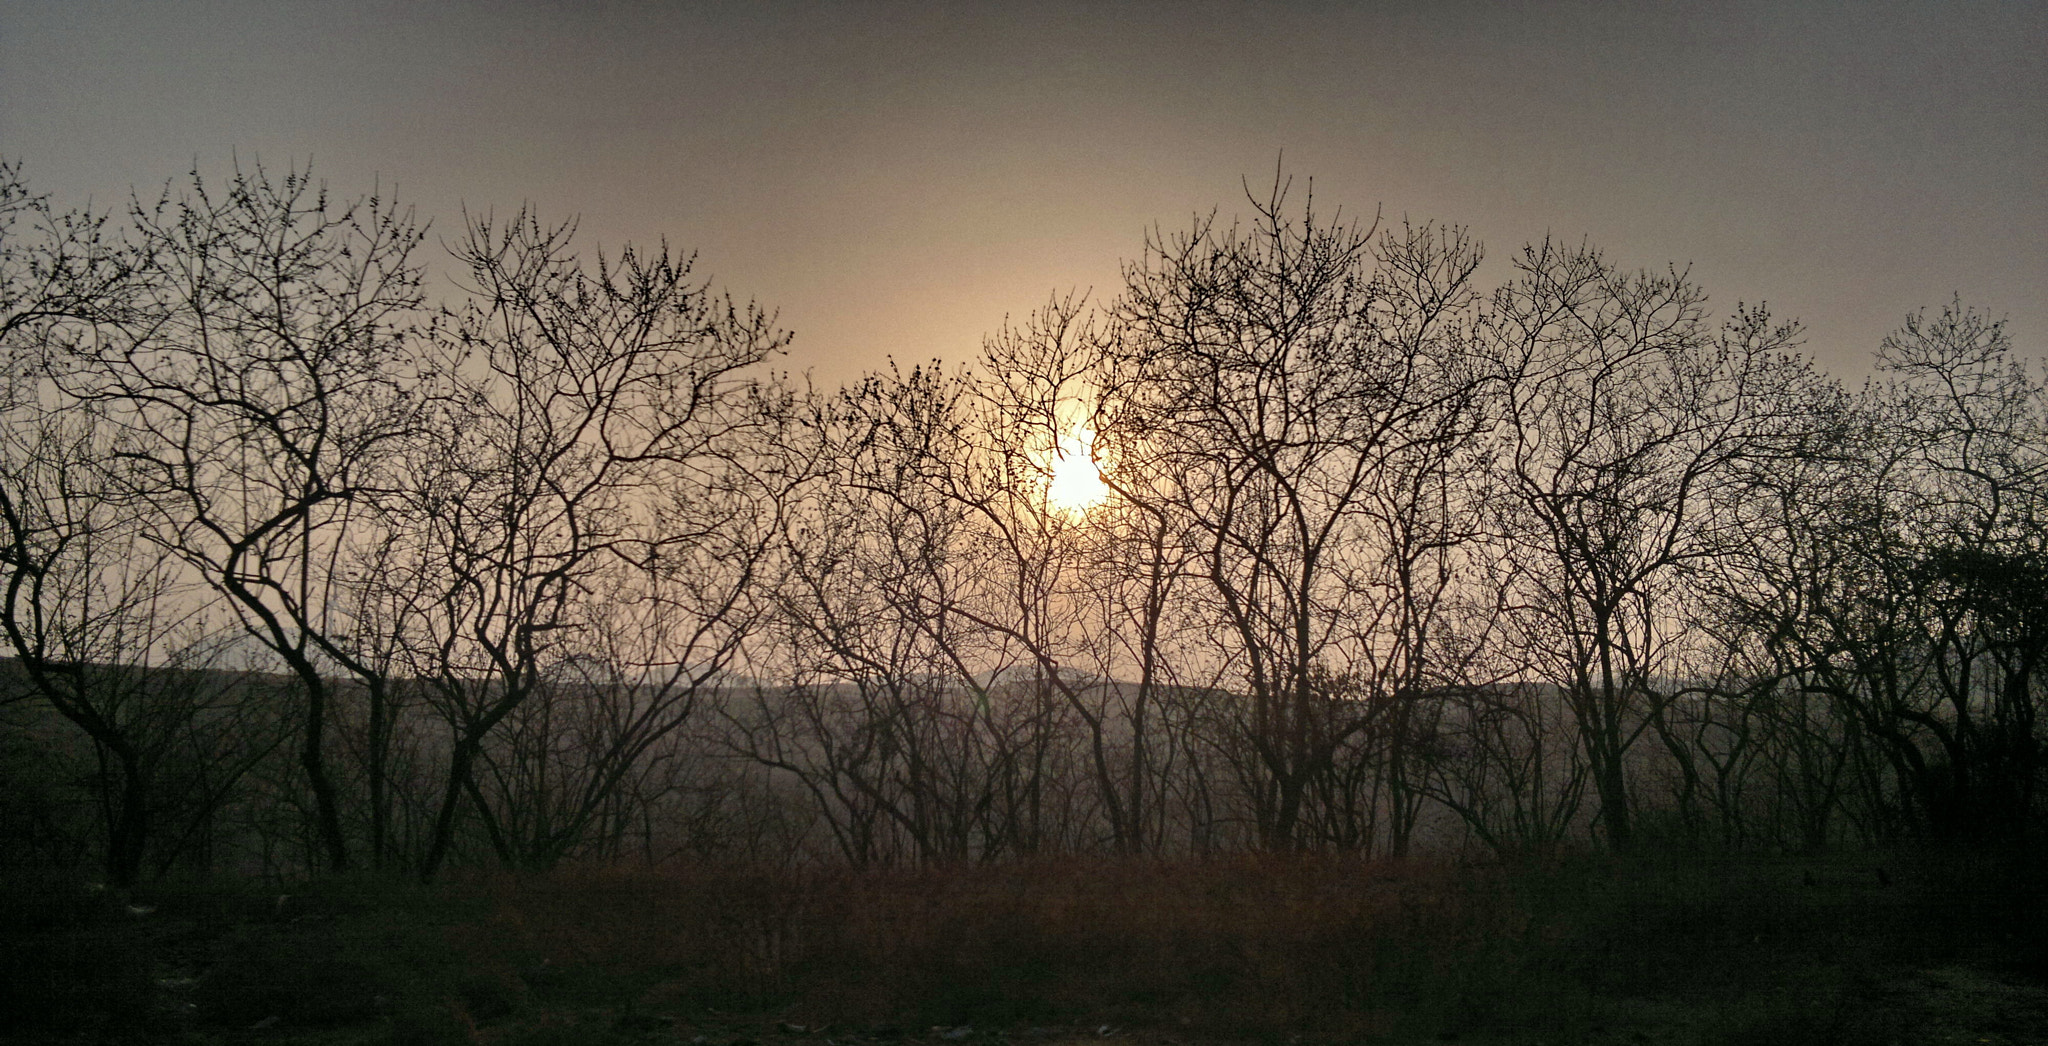 Photograph Like Fire in the Bushes by Rakesh  Hegde on 500px